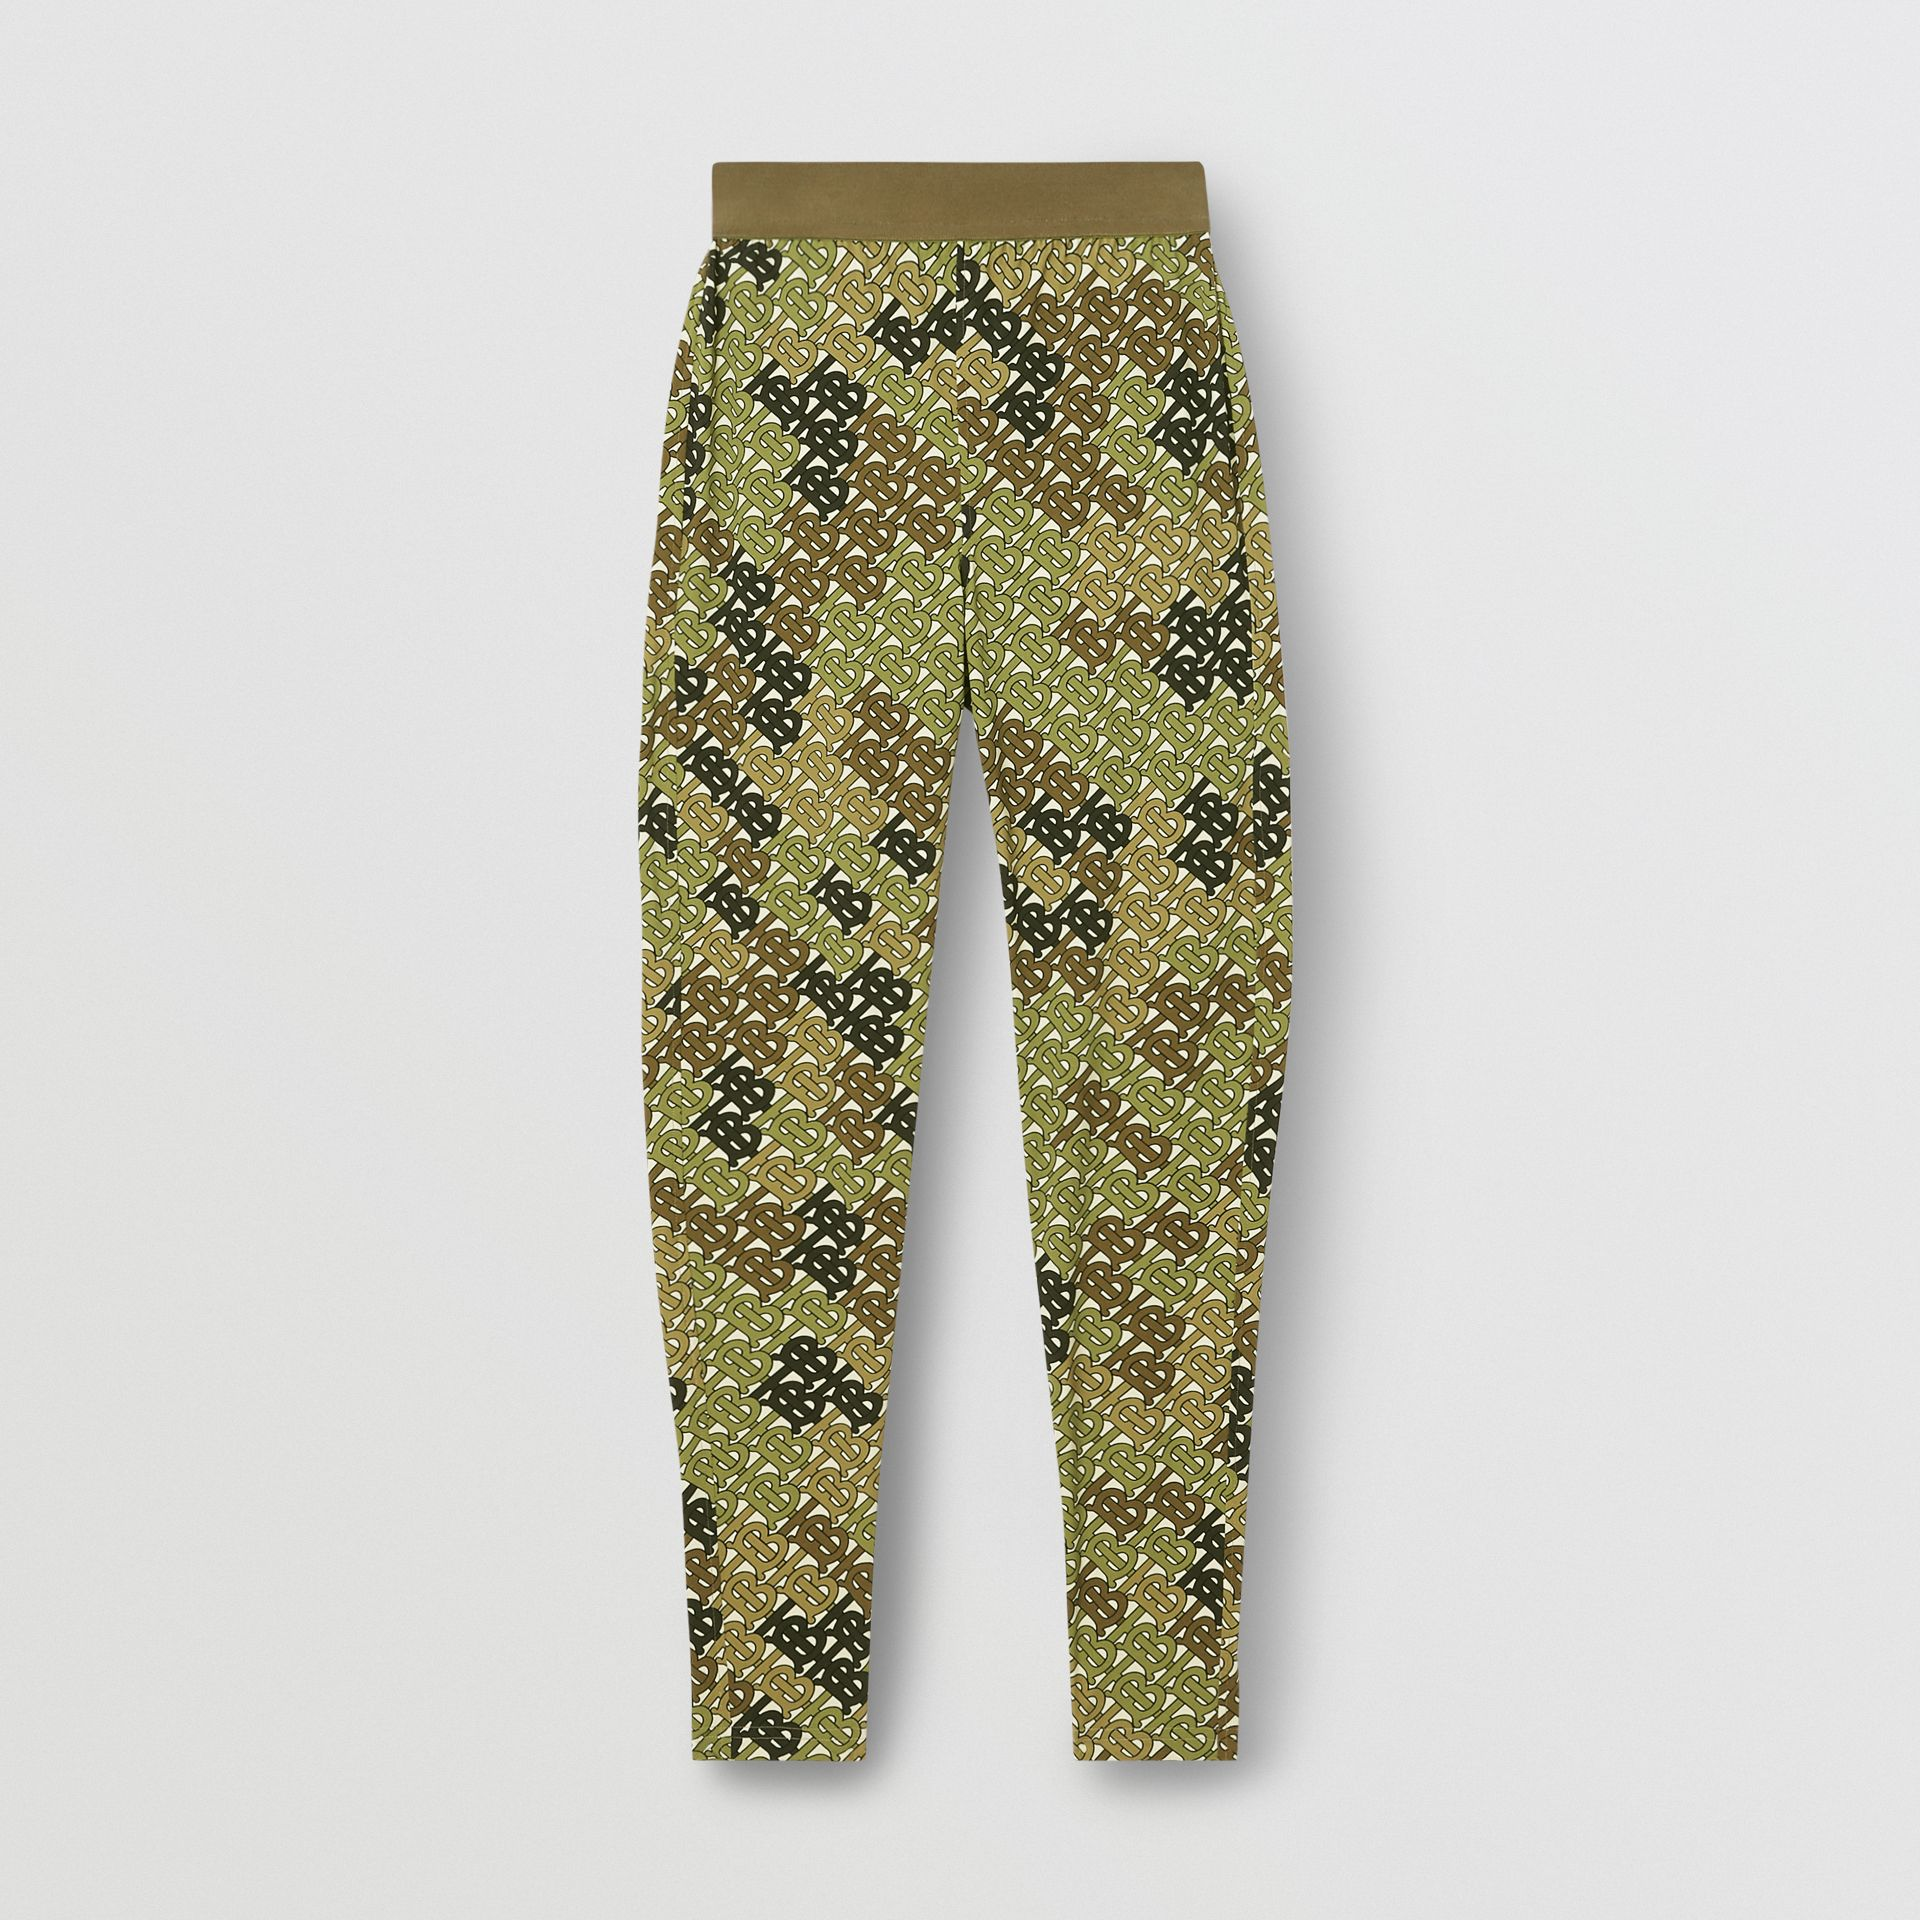 Monogram Print Stretch Jersey Leggings in Khaki Green - Women | Burberry - gallery image 3